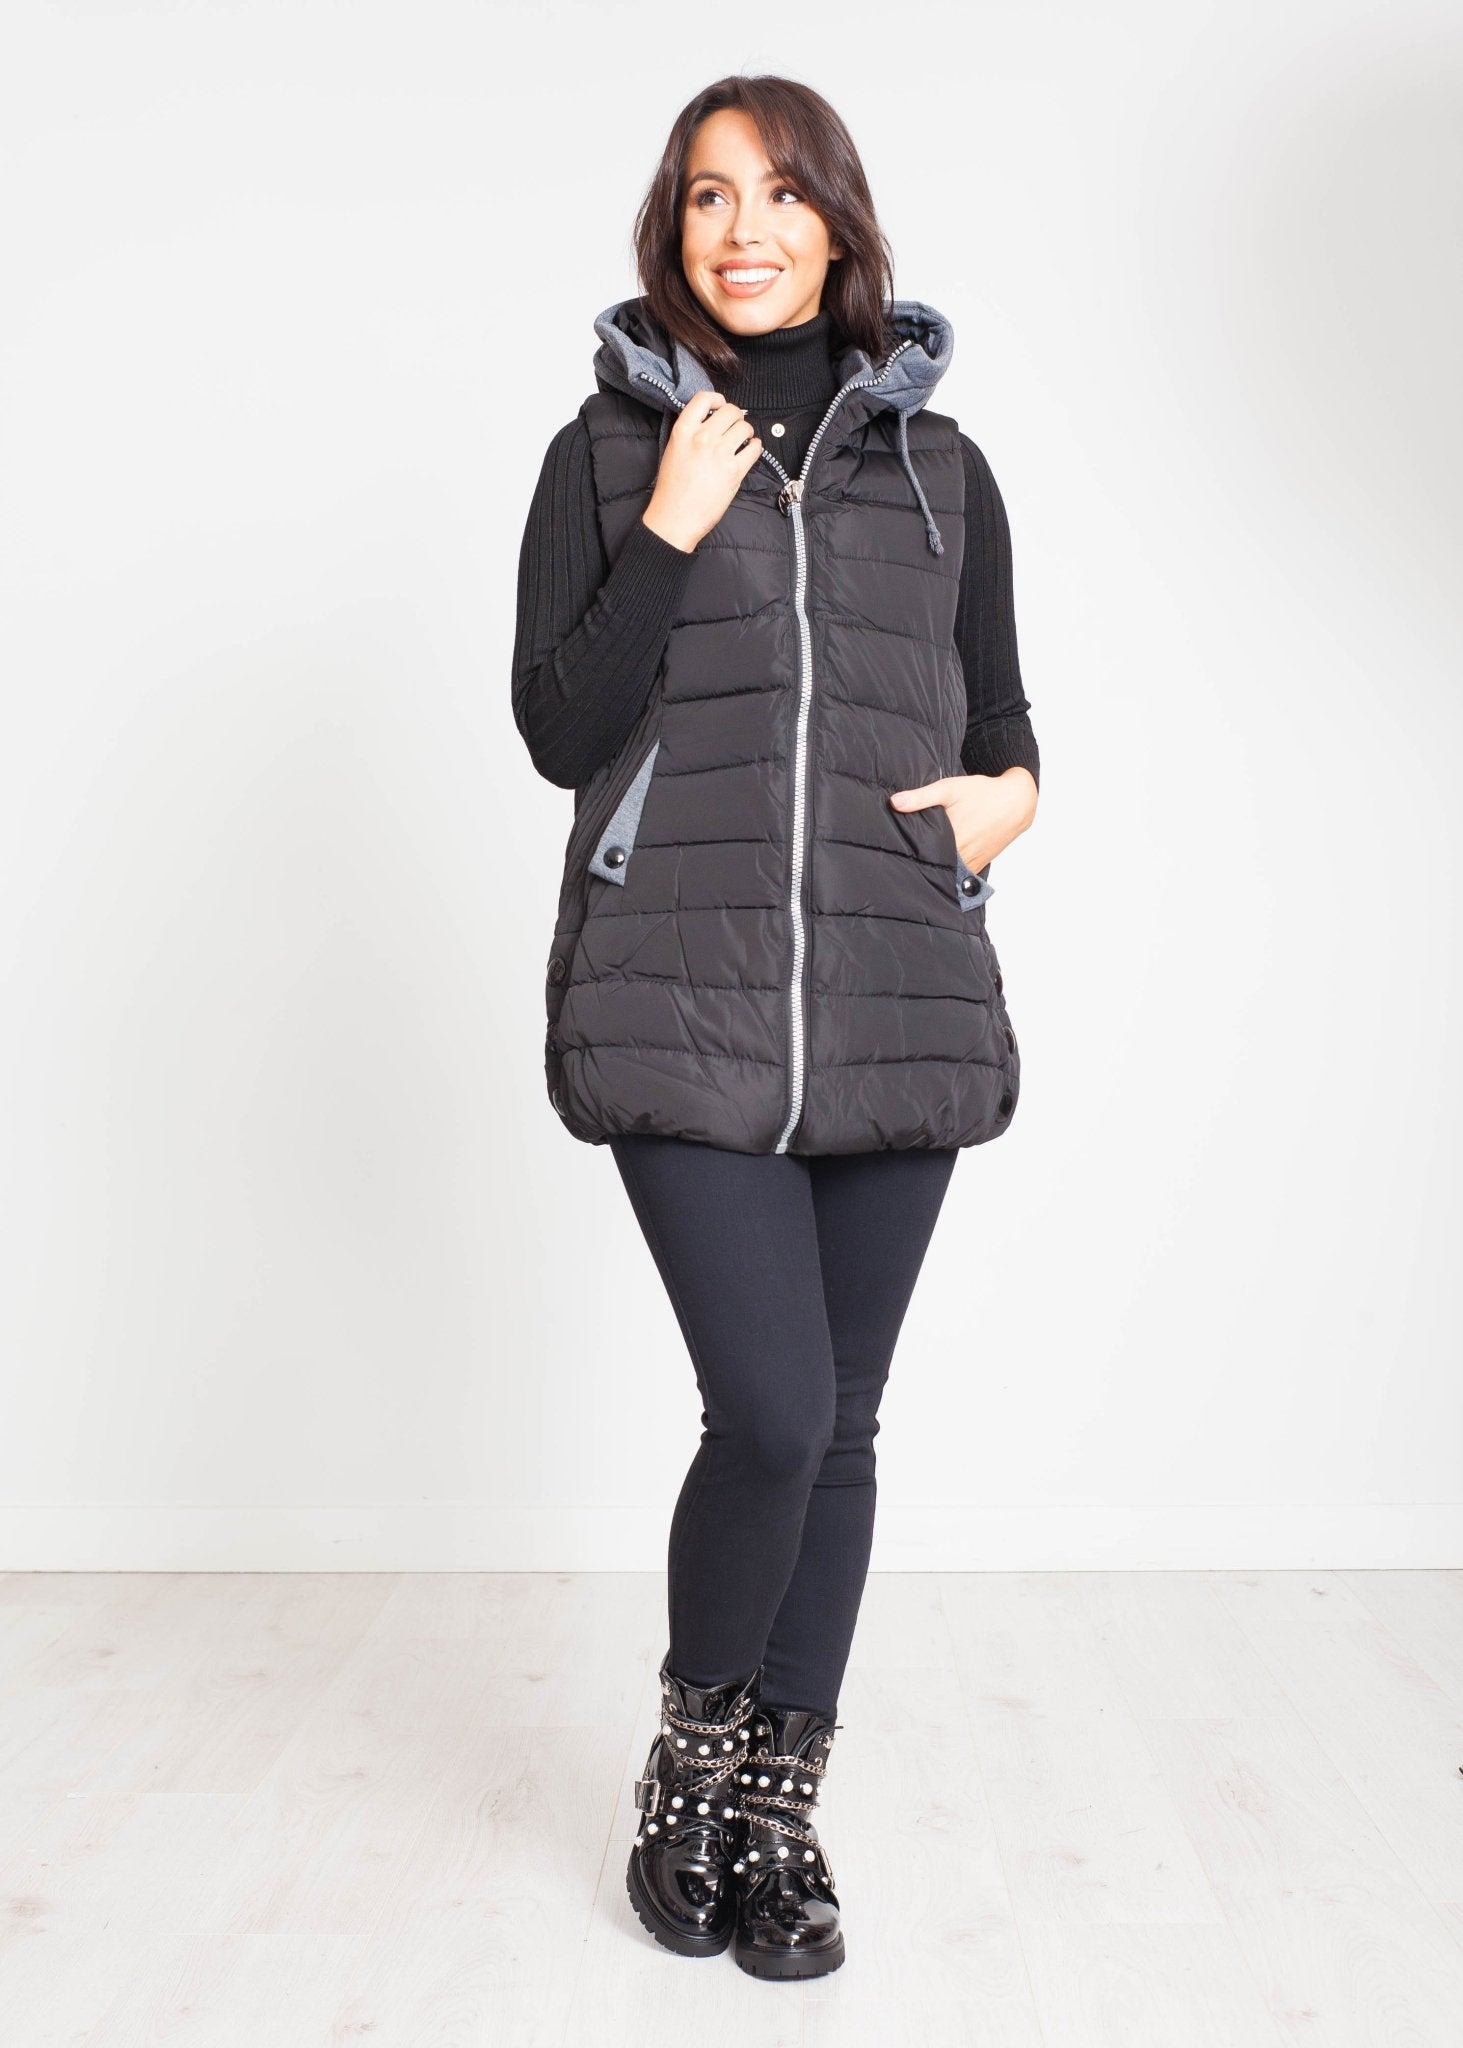 Priya Hooded Gilet In Black And Grey - The Walk in Wardrobe